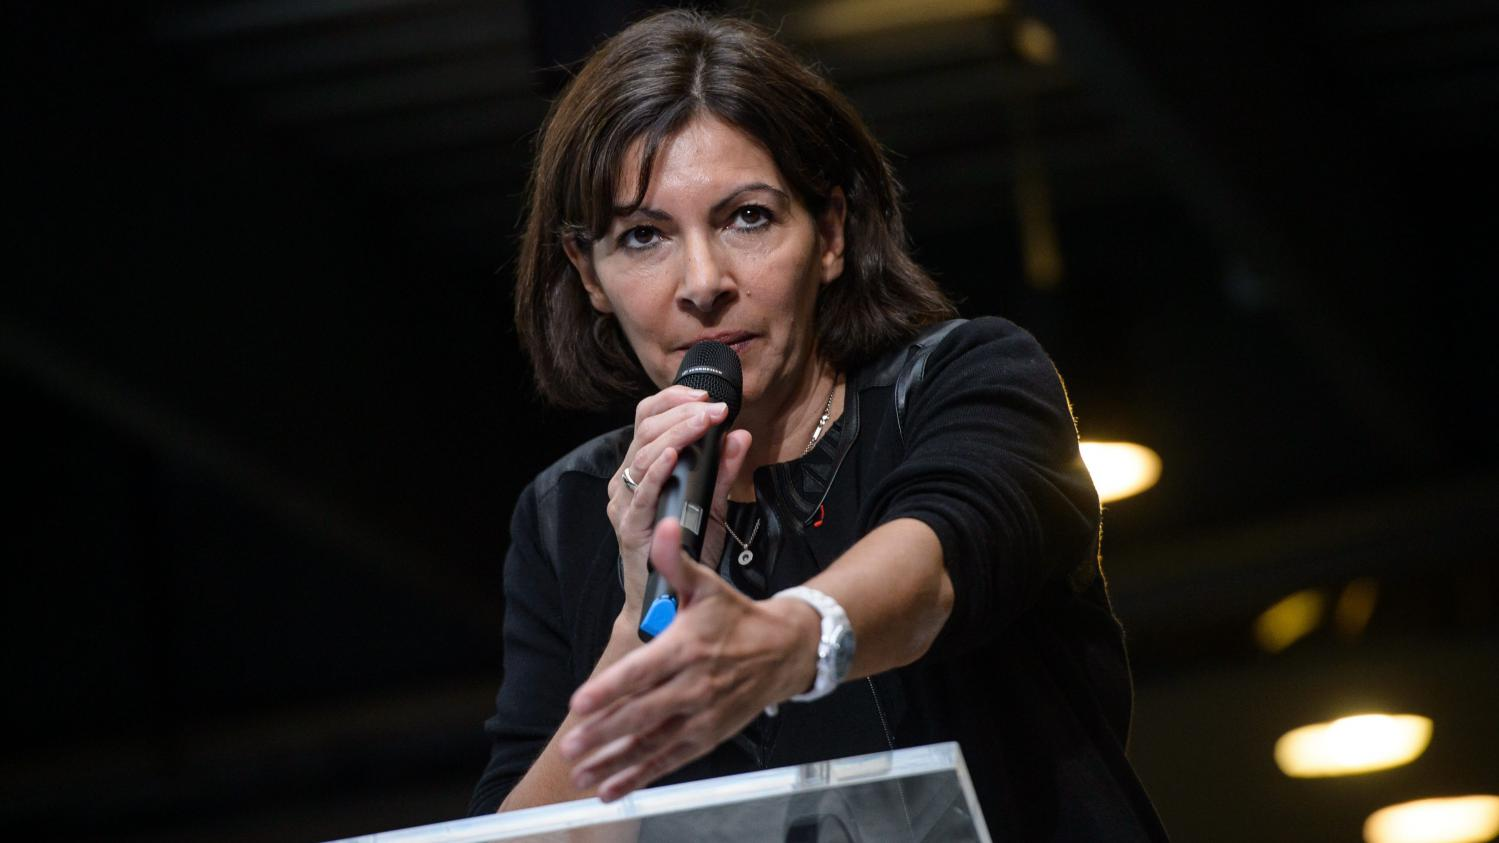 jo 2024 il faut se poser les bonnes questions avant de s 39 engager anne hidalgo. Black Bedroom Furniture Sets. Home Design Ideas